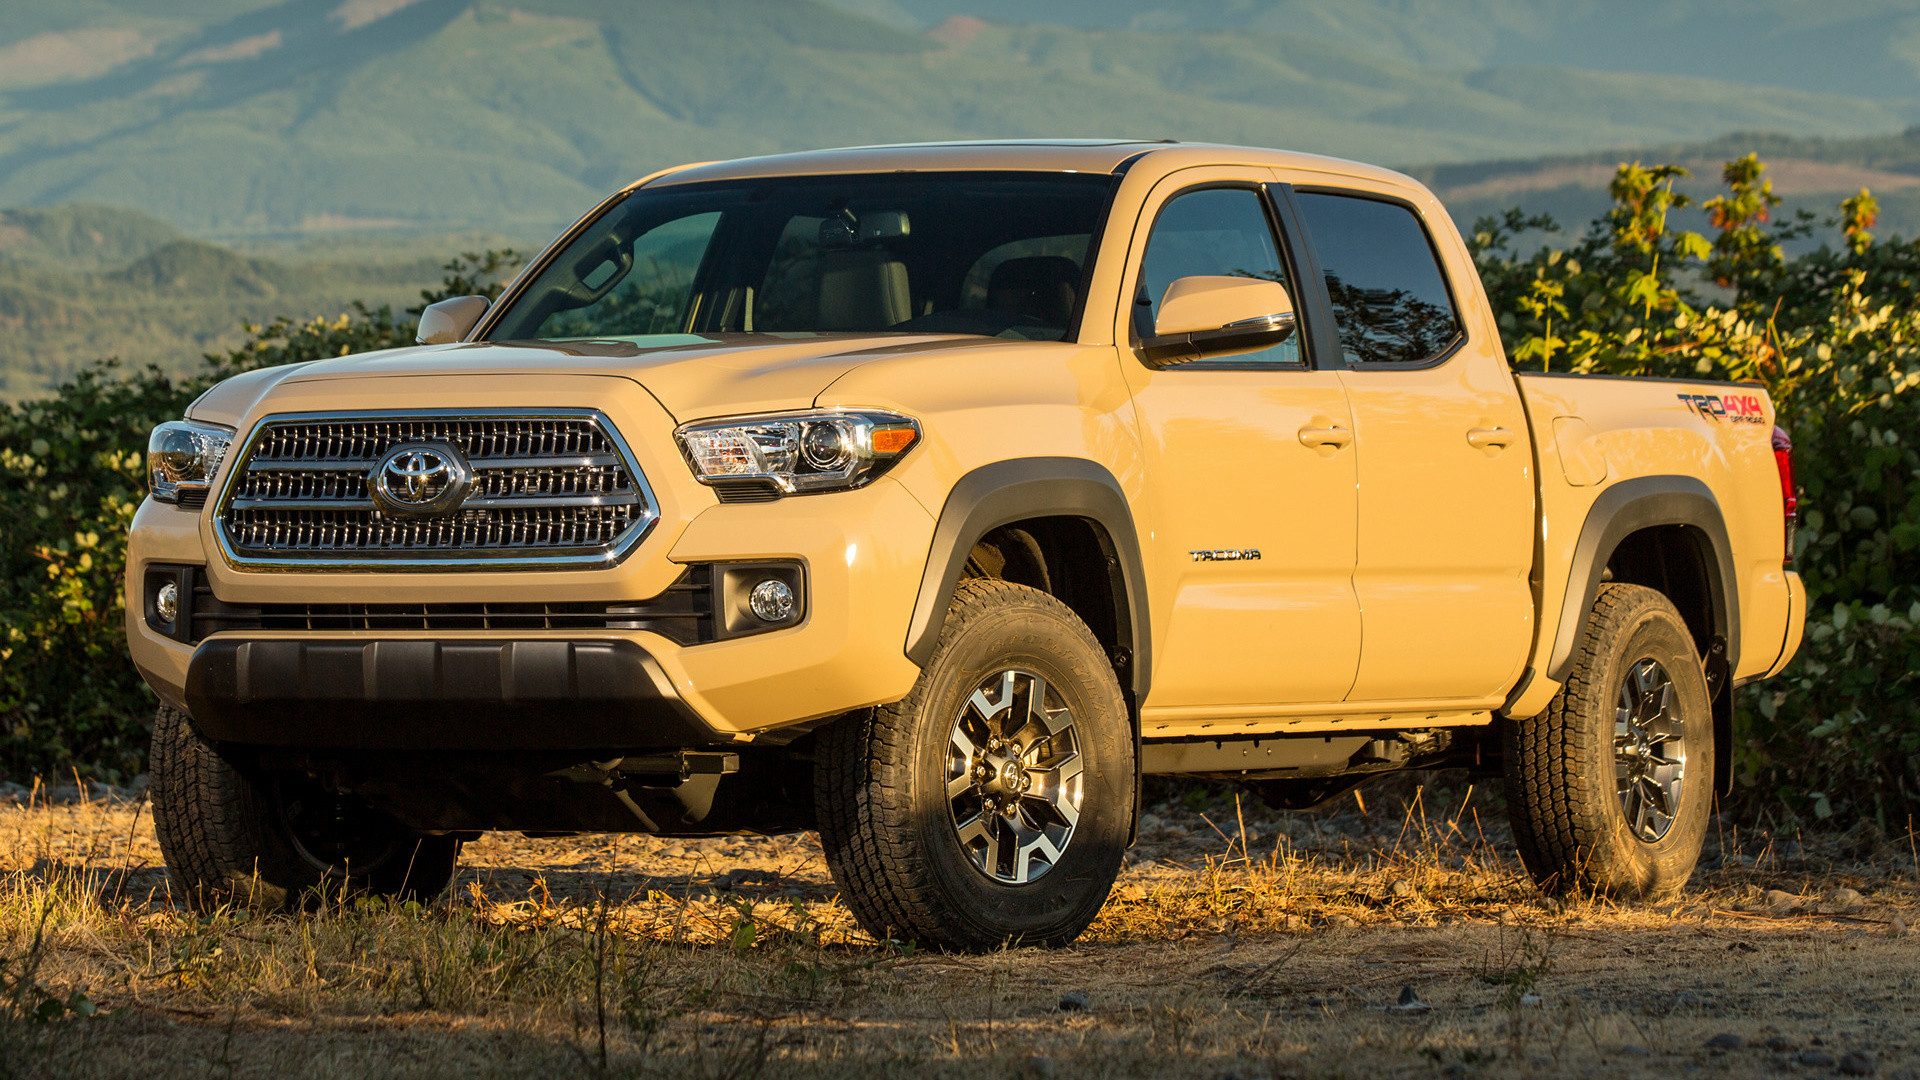 Toyota Tacoma TRD Off-Road Double Cab (2016) Wallpapers .